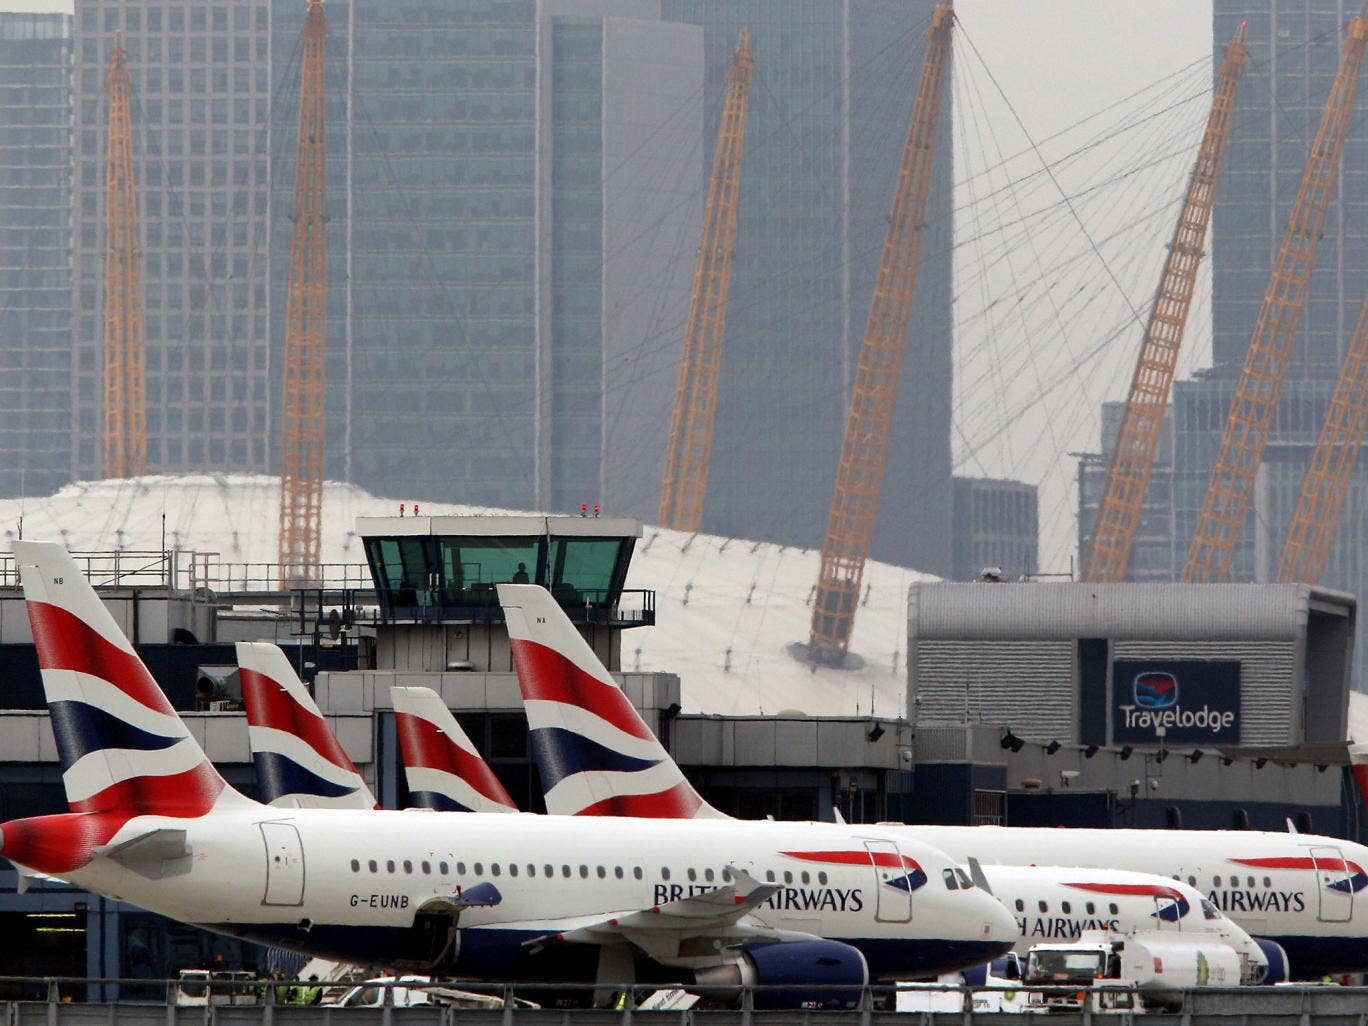 London City Airport had to be evacuated on Tuesday when a passenger who was running late for a flight to Frankfurt triggered the fire alarm after being blocked from boarding his plane.